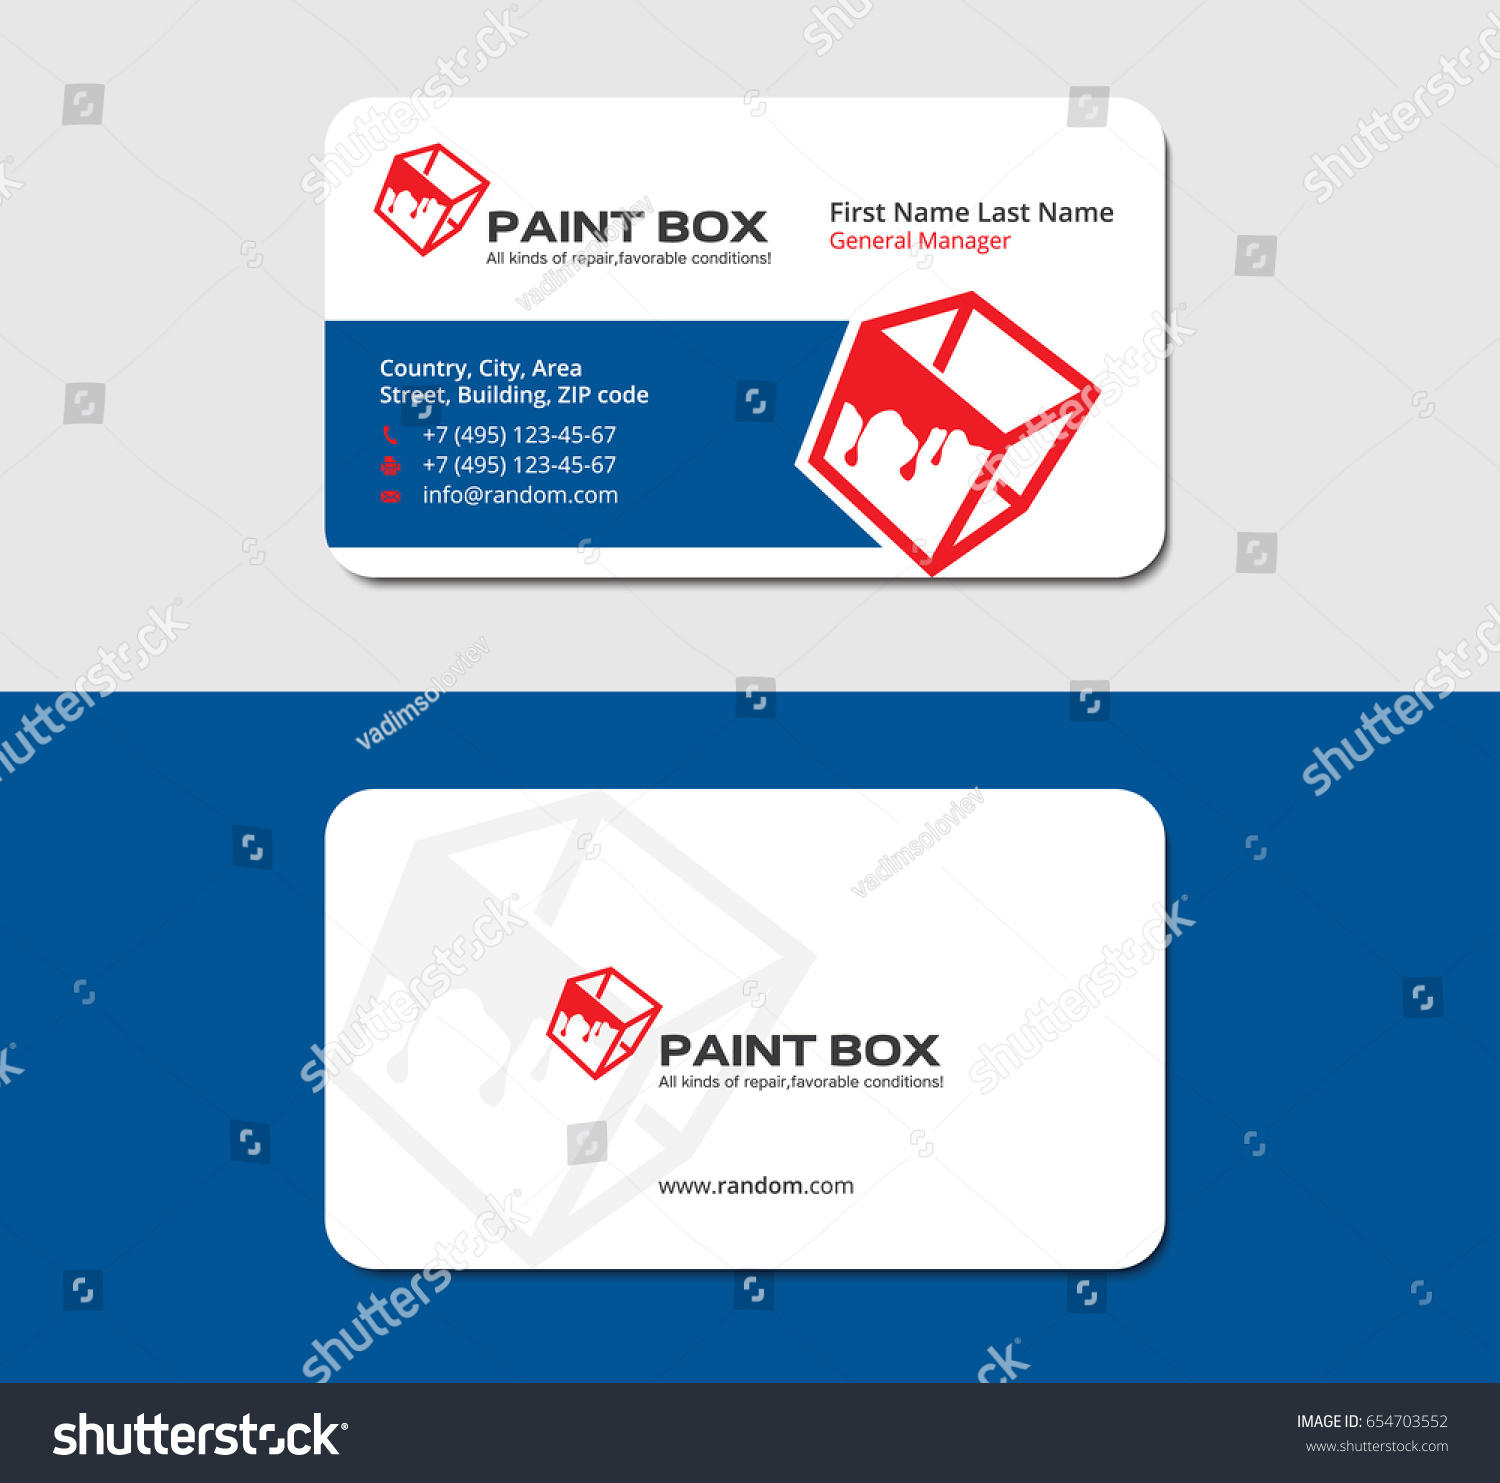 House painting business cards images free business cards paint business cards gallery free business cards business card red box paint flows stock vector 654703552 magicingreecefo Images